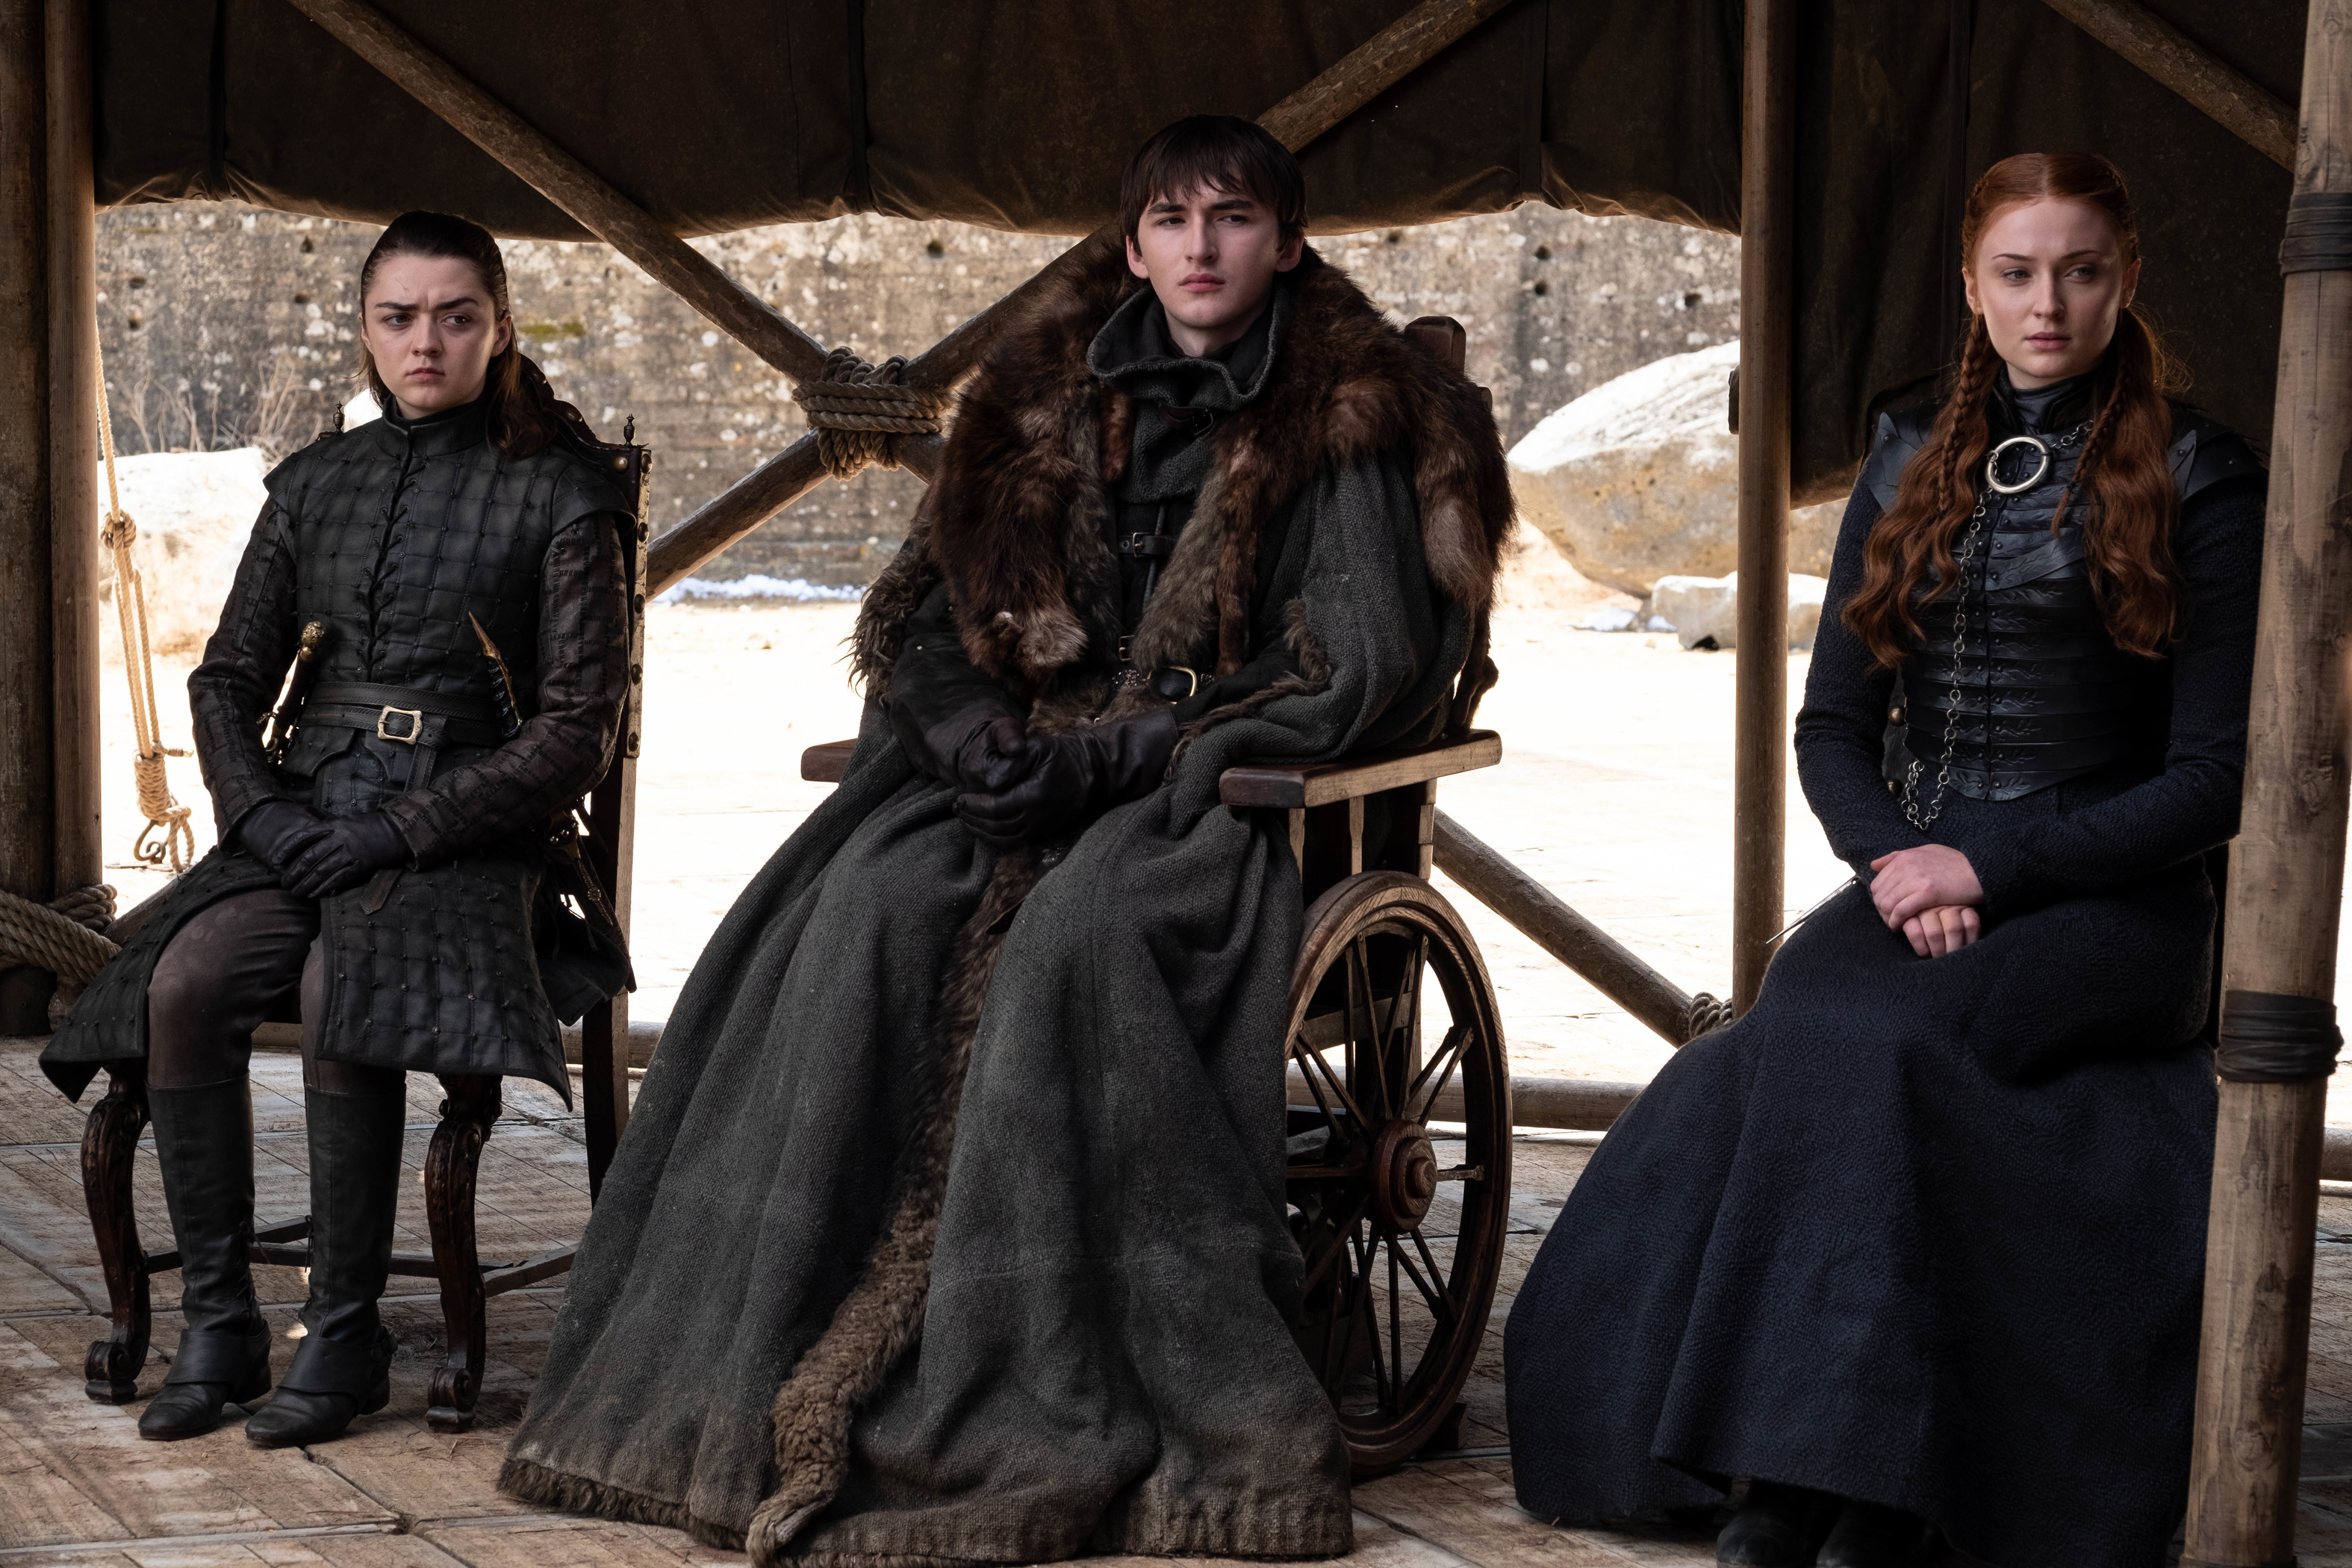 Maisie Williams as Arya Stark, Isaac Hempstead Wright as Bran Stark and Sophie Turner as Sansa Stark in the series finale of Game of Thrones.